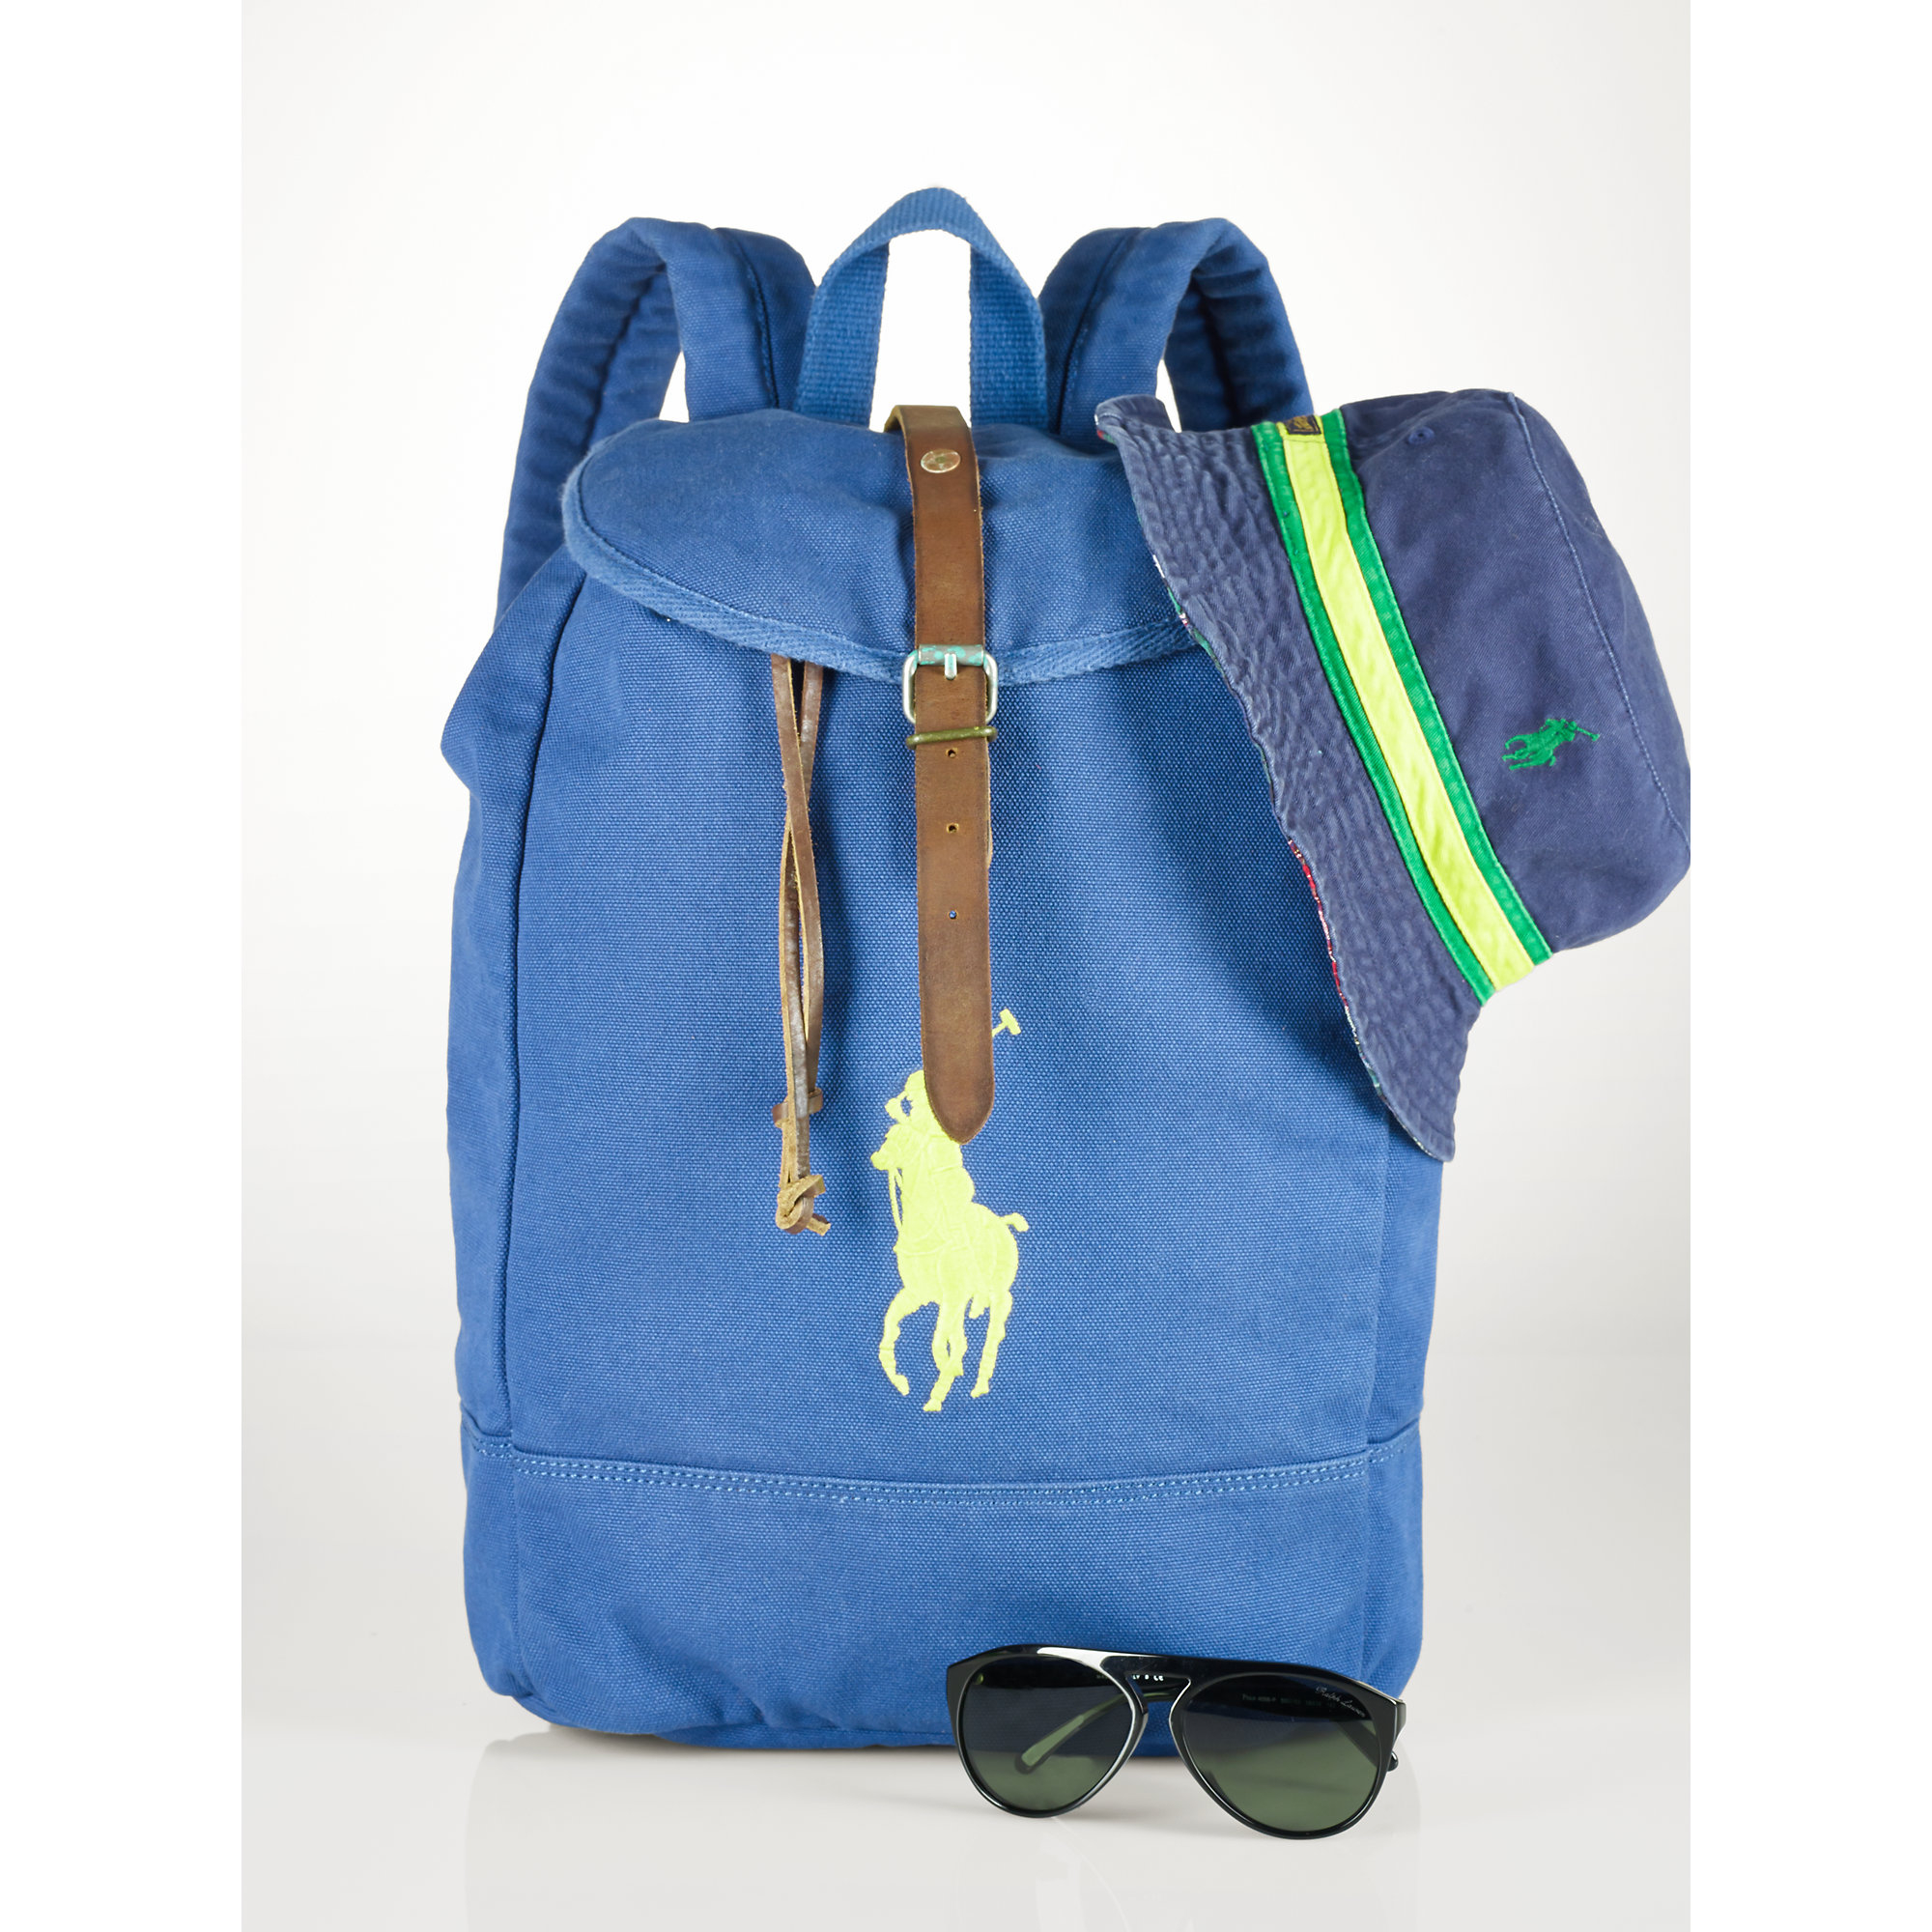 Lyst - Polo Ralph Lauren Big Pony Backpack in Blue for Men 9a7a478359ad1